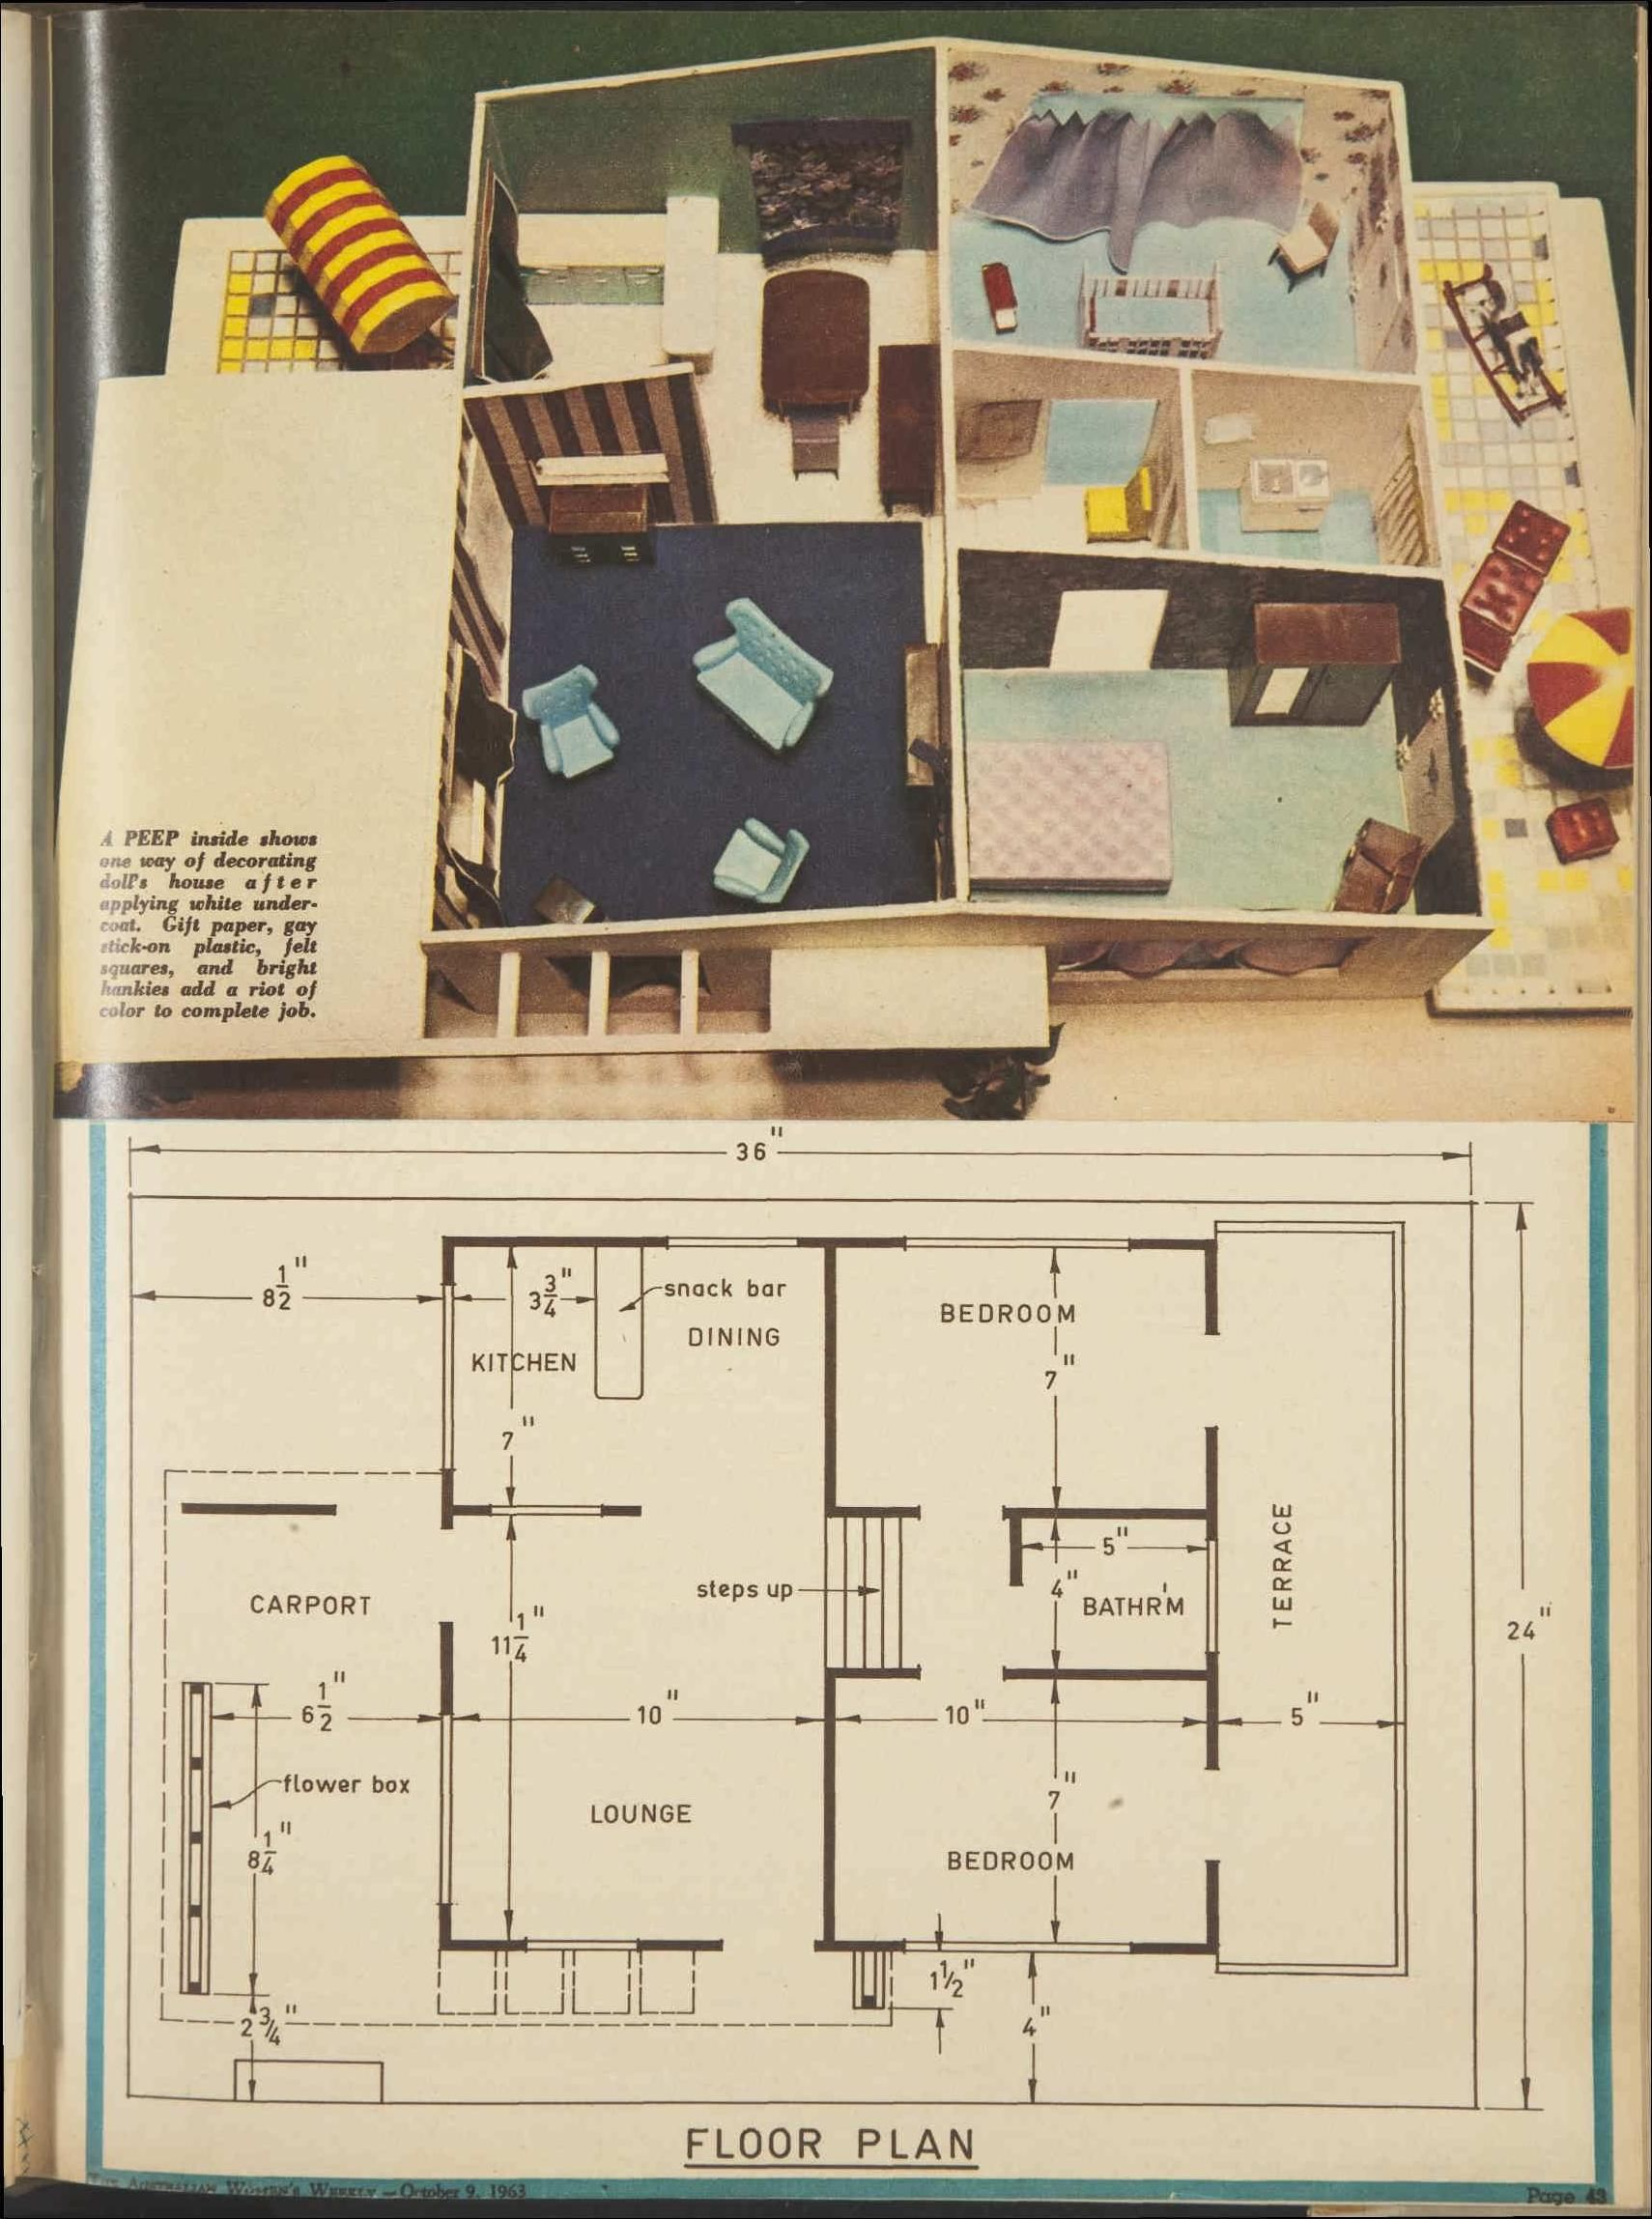 Plans For A Split Level 1960s Doll S House 9 Oct 1963 The